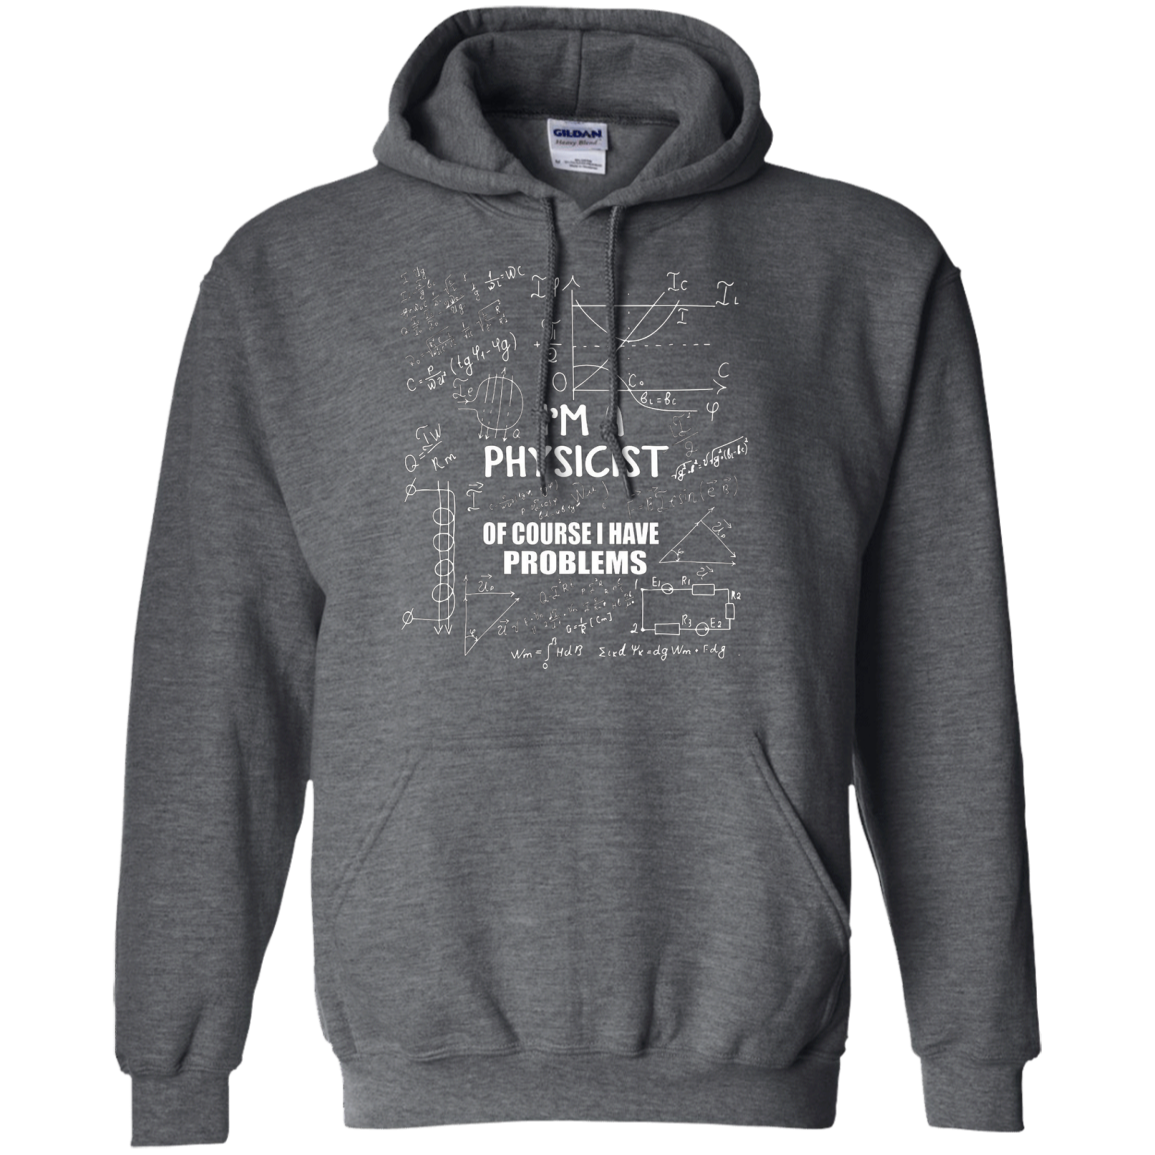 I'm a Physicist of Course I Have Problems T-Shirt